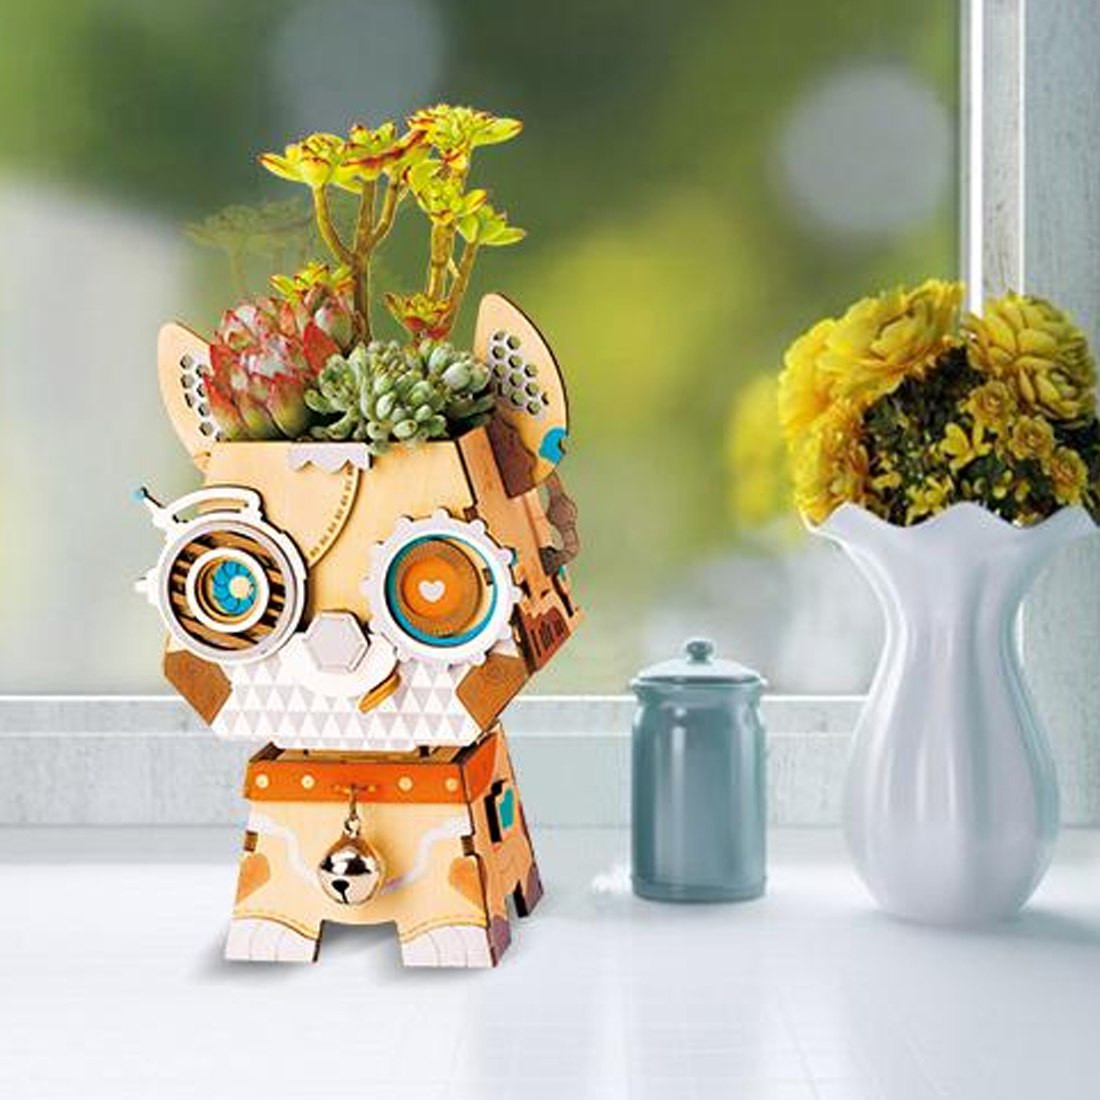 3d puzzle vase of nfstrike cartoon cute dog robot flower pot 3d wooden puzzles toys with nfstrike cartoon cute dog robot flower pot 3d wooden puzzles toys kids model building kits pen container for desk decor pomotion in model building kits from